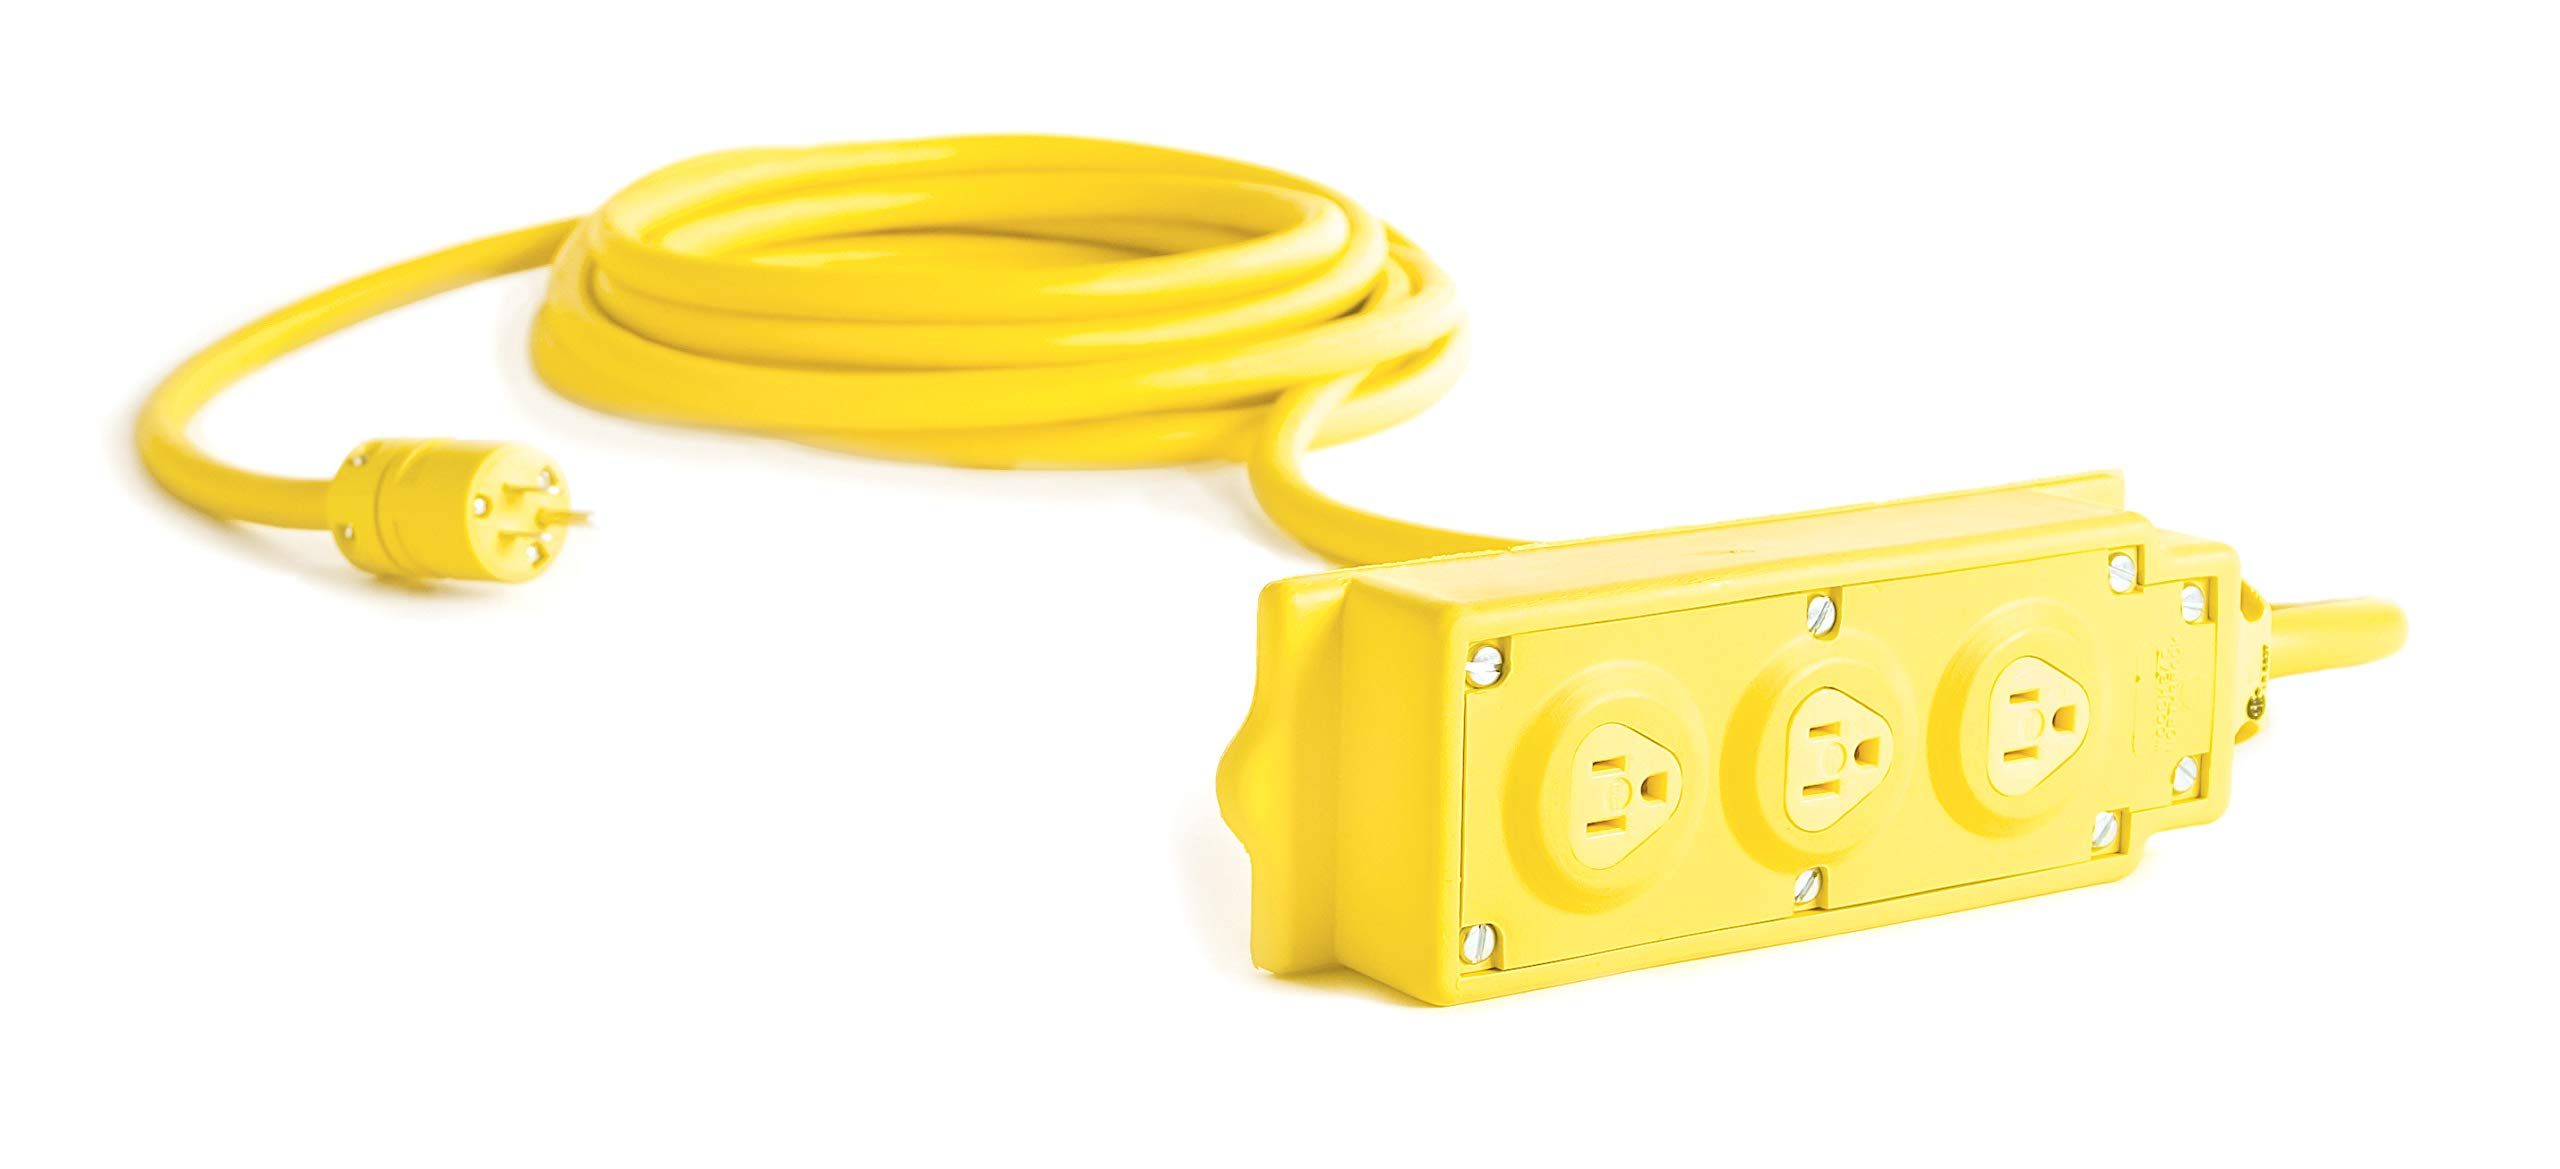 Woodhead 31593A143IN Super-Safeway Outlet Box, Multi-Tap Strip, Inline GFCI, Manual Reset, Open Neutral Relay, NEMA 5-15 Configuration, 2 Poles, 3 Wires, 14/3 SJOW Cord Type, 25ft Cord Length, 15A Current